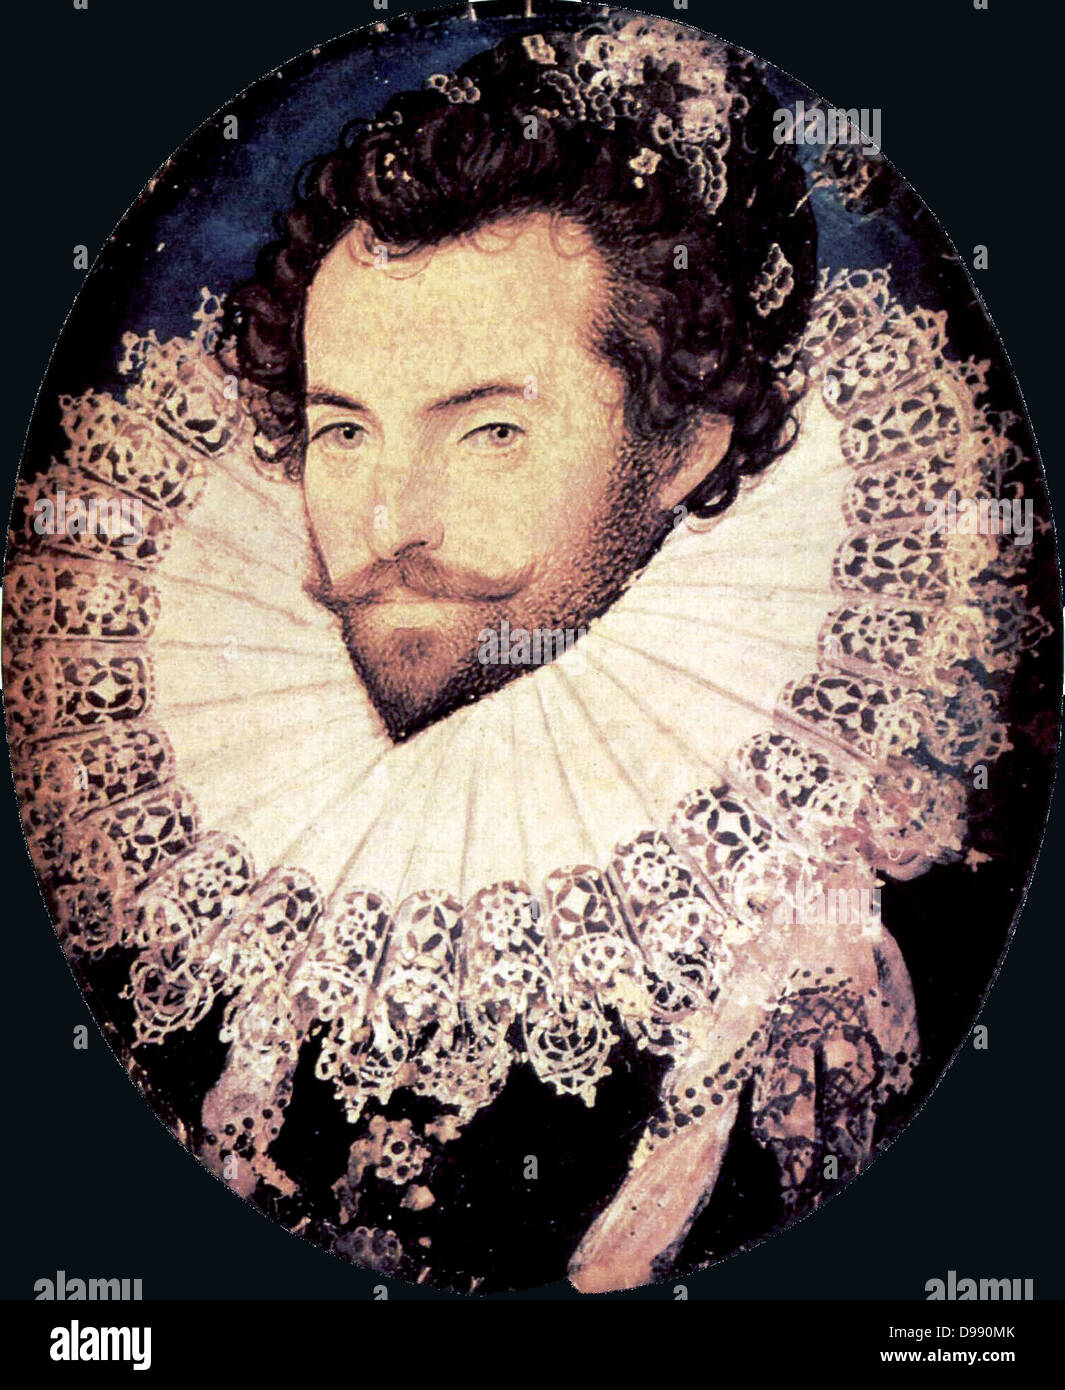 Portrait of Sir Walter Raleigh, 1585. Walter Raleigh or Ralegh[1] (c. 1552 – 29 October 1618), was a famed English - Stock Image